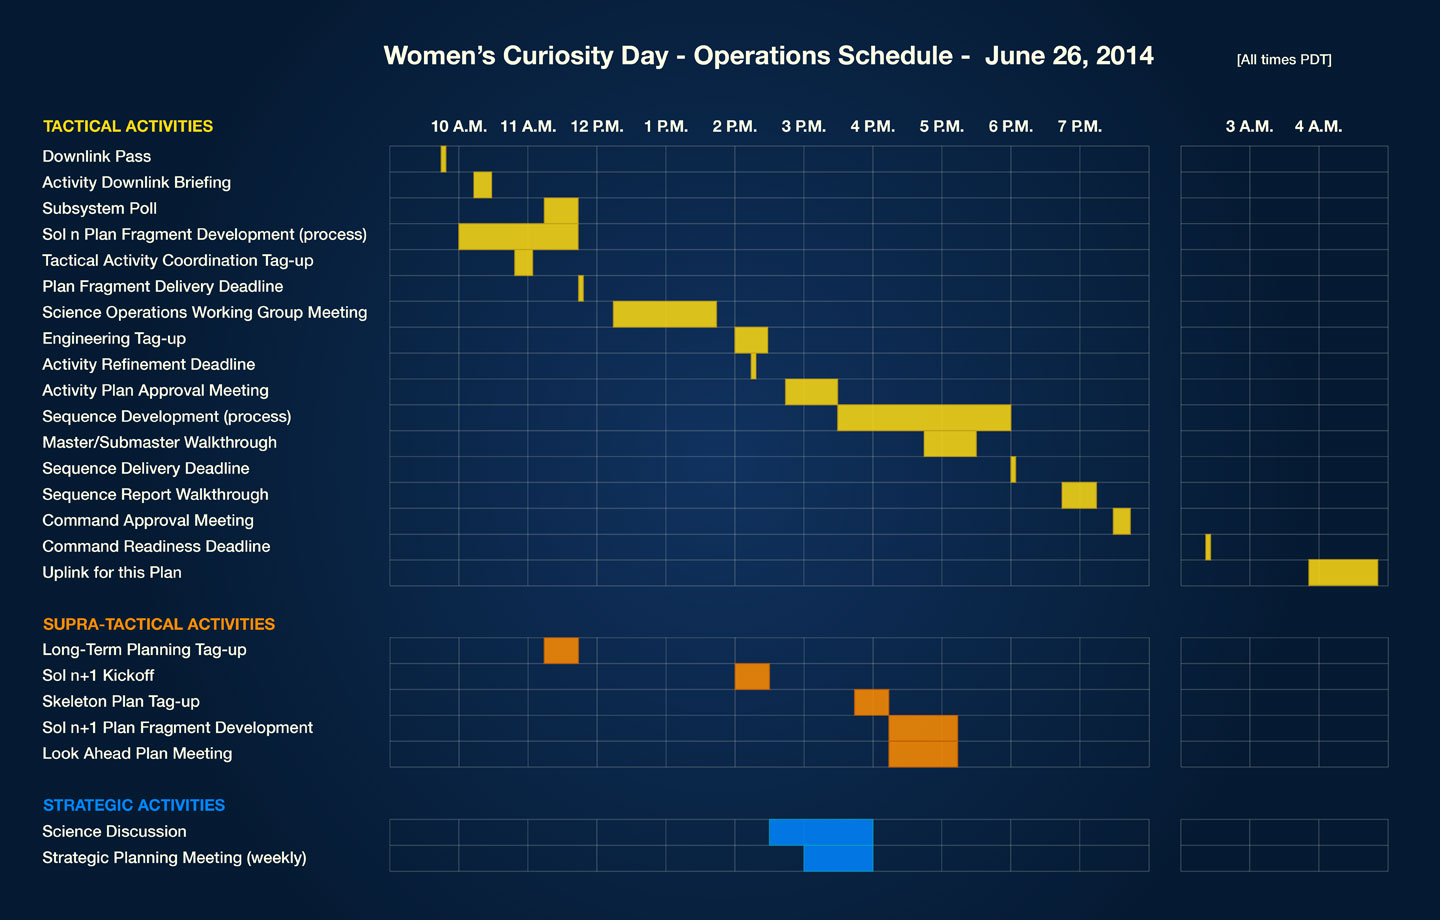 This is a timeline showing the rover's daily operation schedule. Curiosity has three parallel processes going on at the same time: tactical (shown in yellow), supra-tactical (shown in orange), and strategic planning (shown in blue). There are several steps under each process.